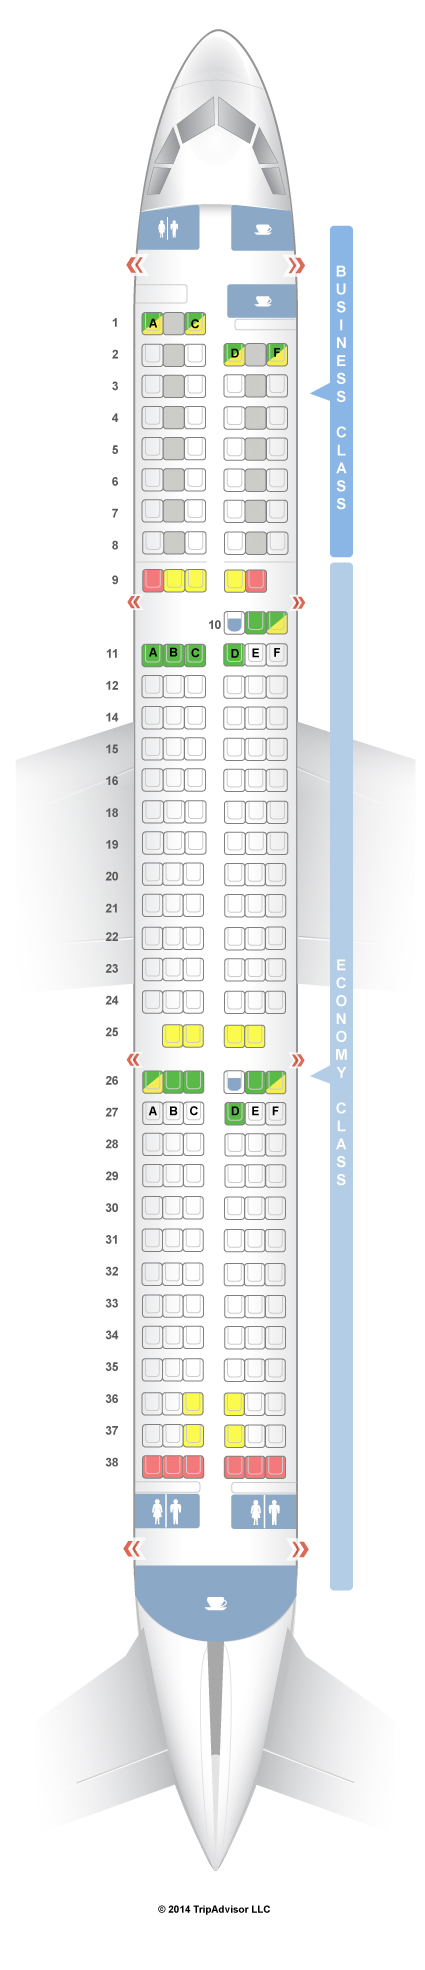 Airbus A330 343 Seating Plan Lufthansa Awesome Home